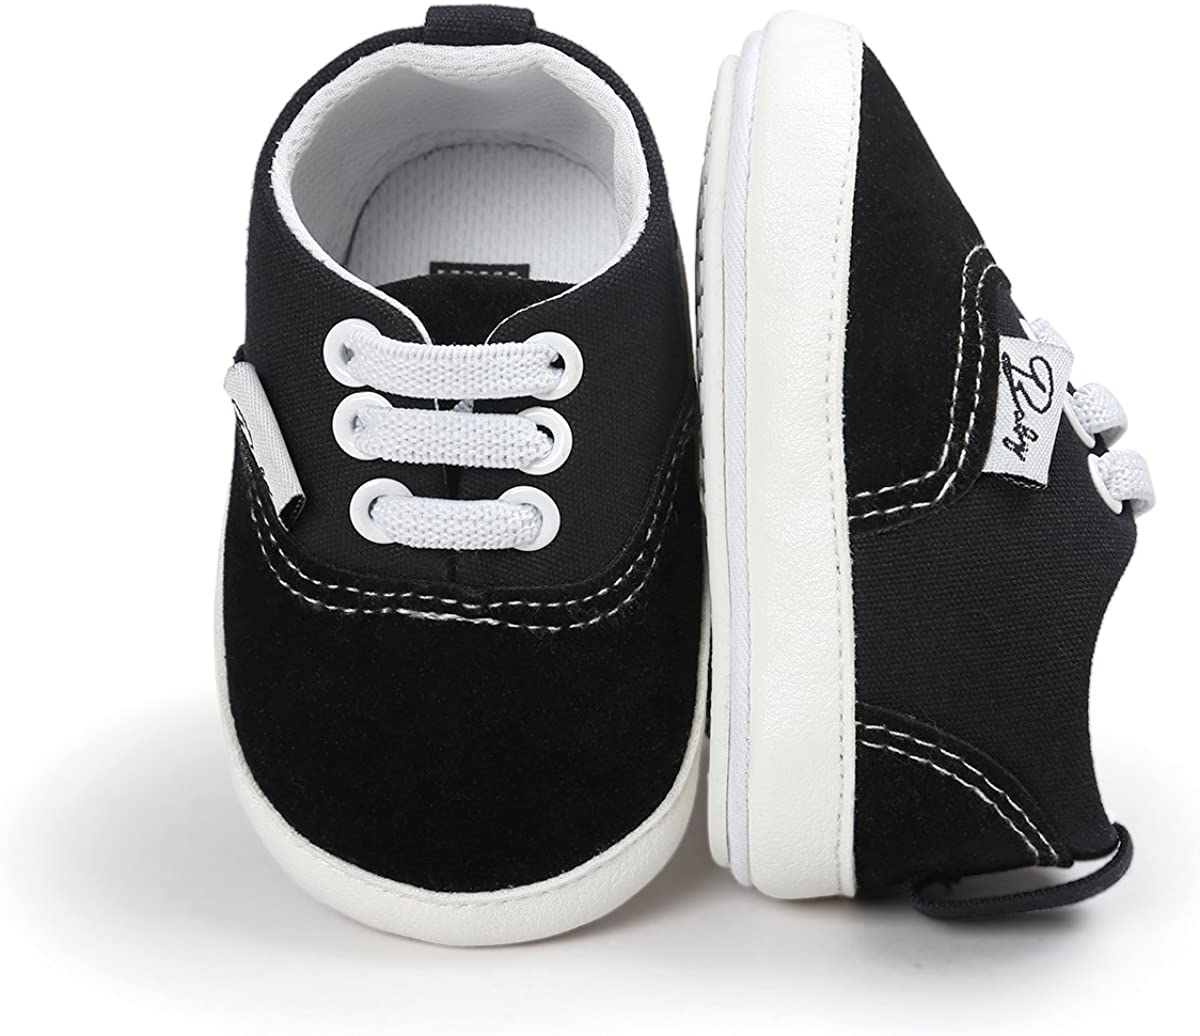 | RVROVIC Baby Boys Girls Shoes Canvas Toddler Sneakers Anti-Slip Infant First Walkers 0-18 Months | Sneakers